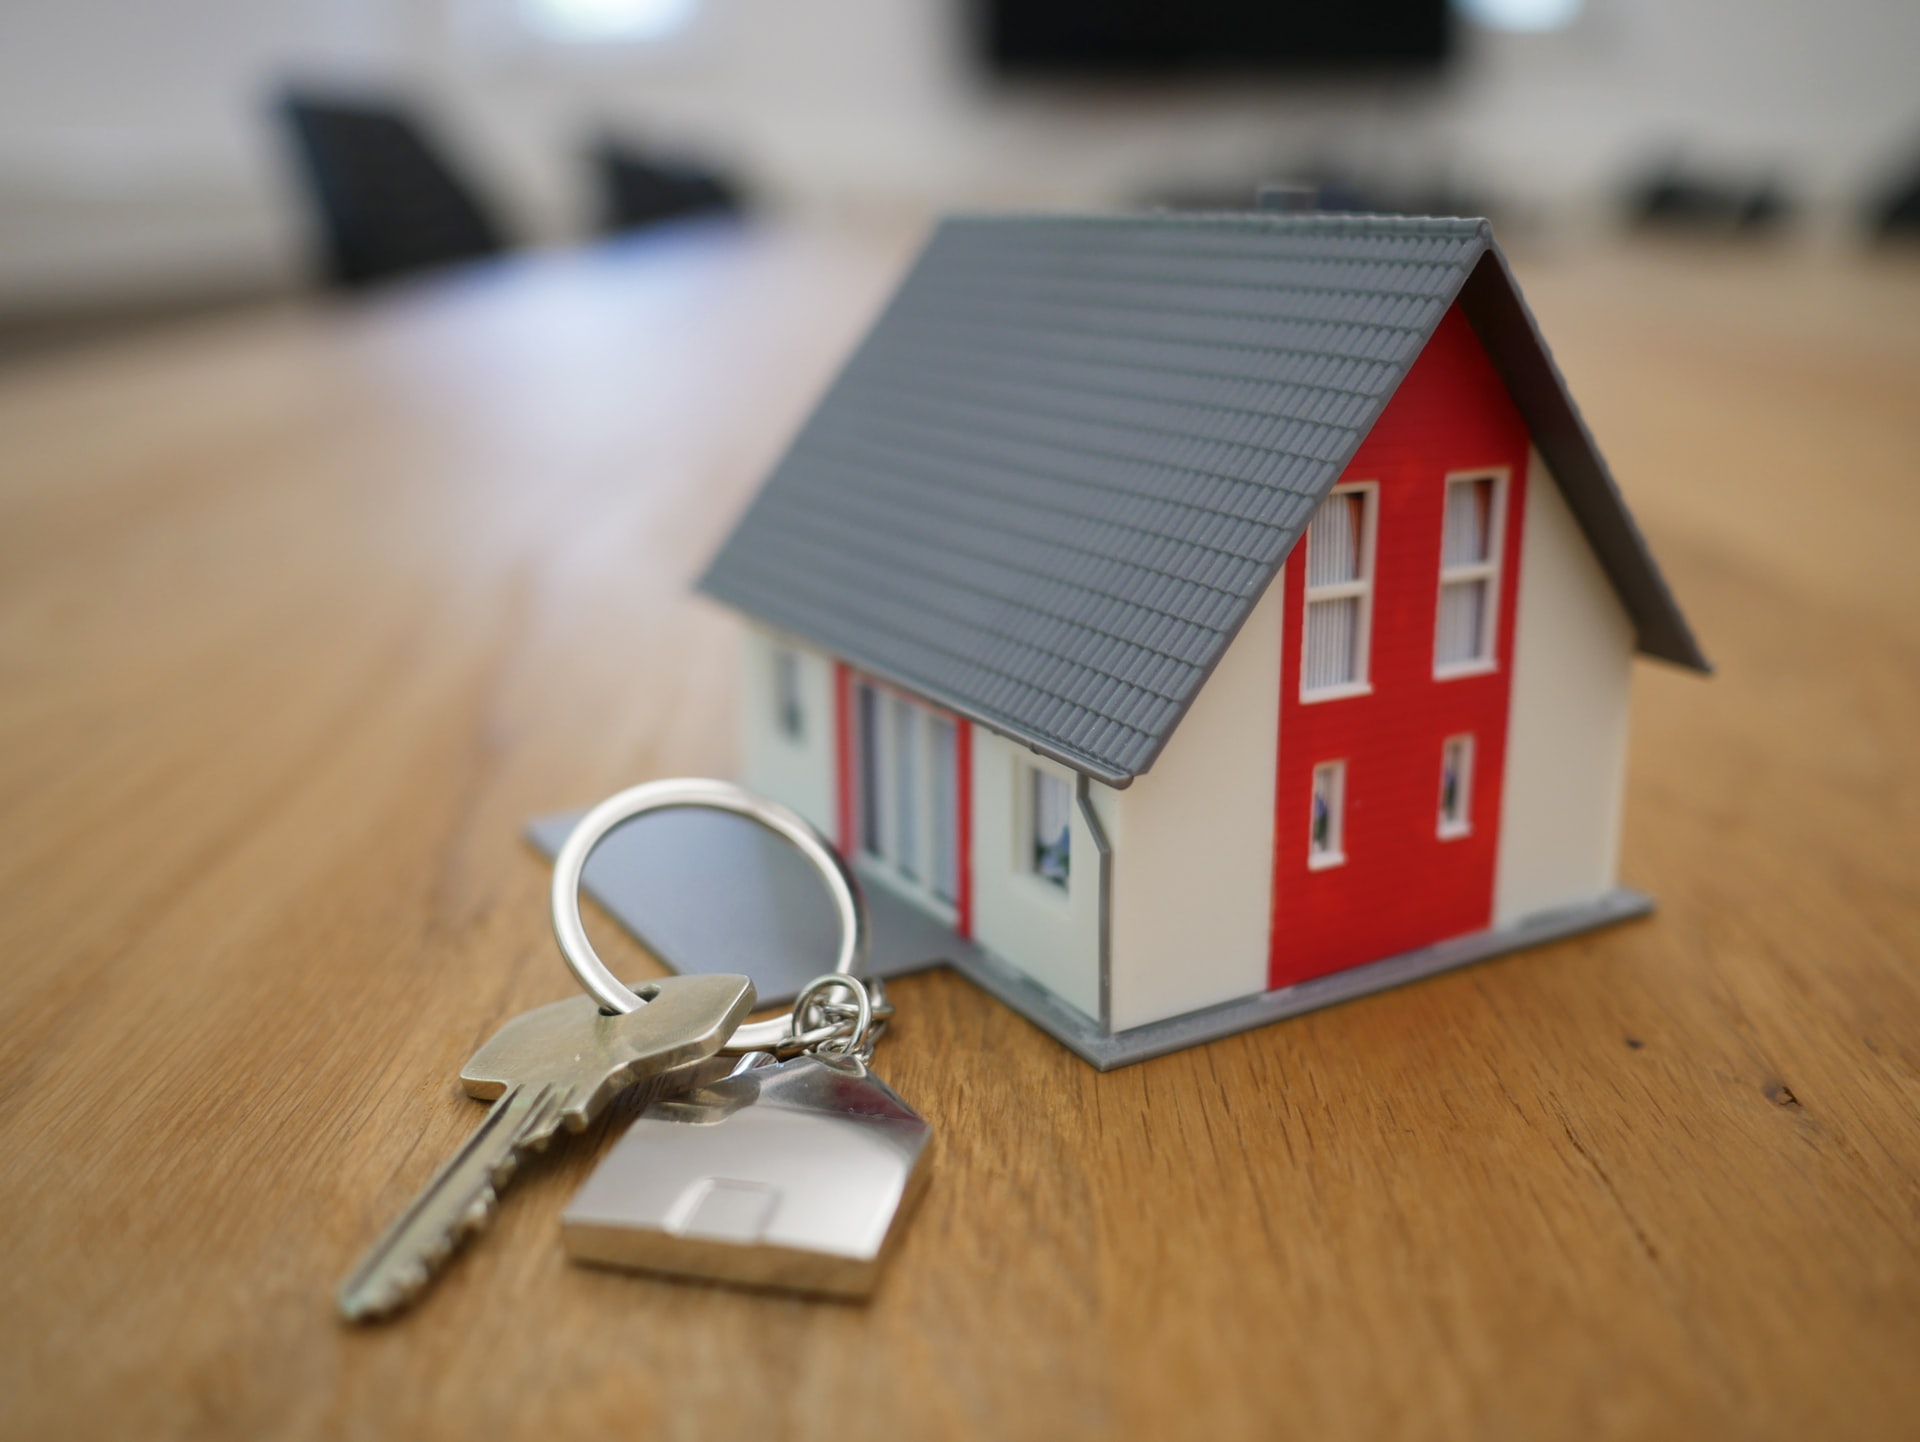 Rent and the coronavirus: How to avoid eviction if you can't pay